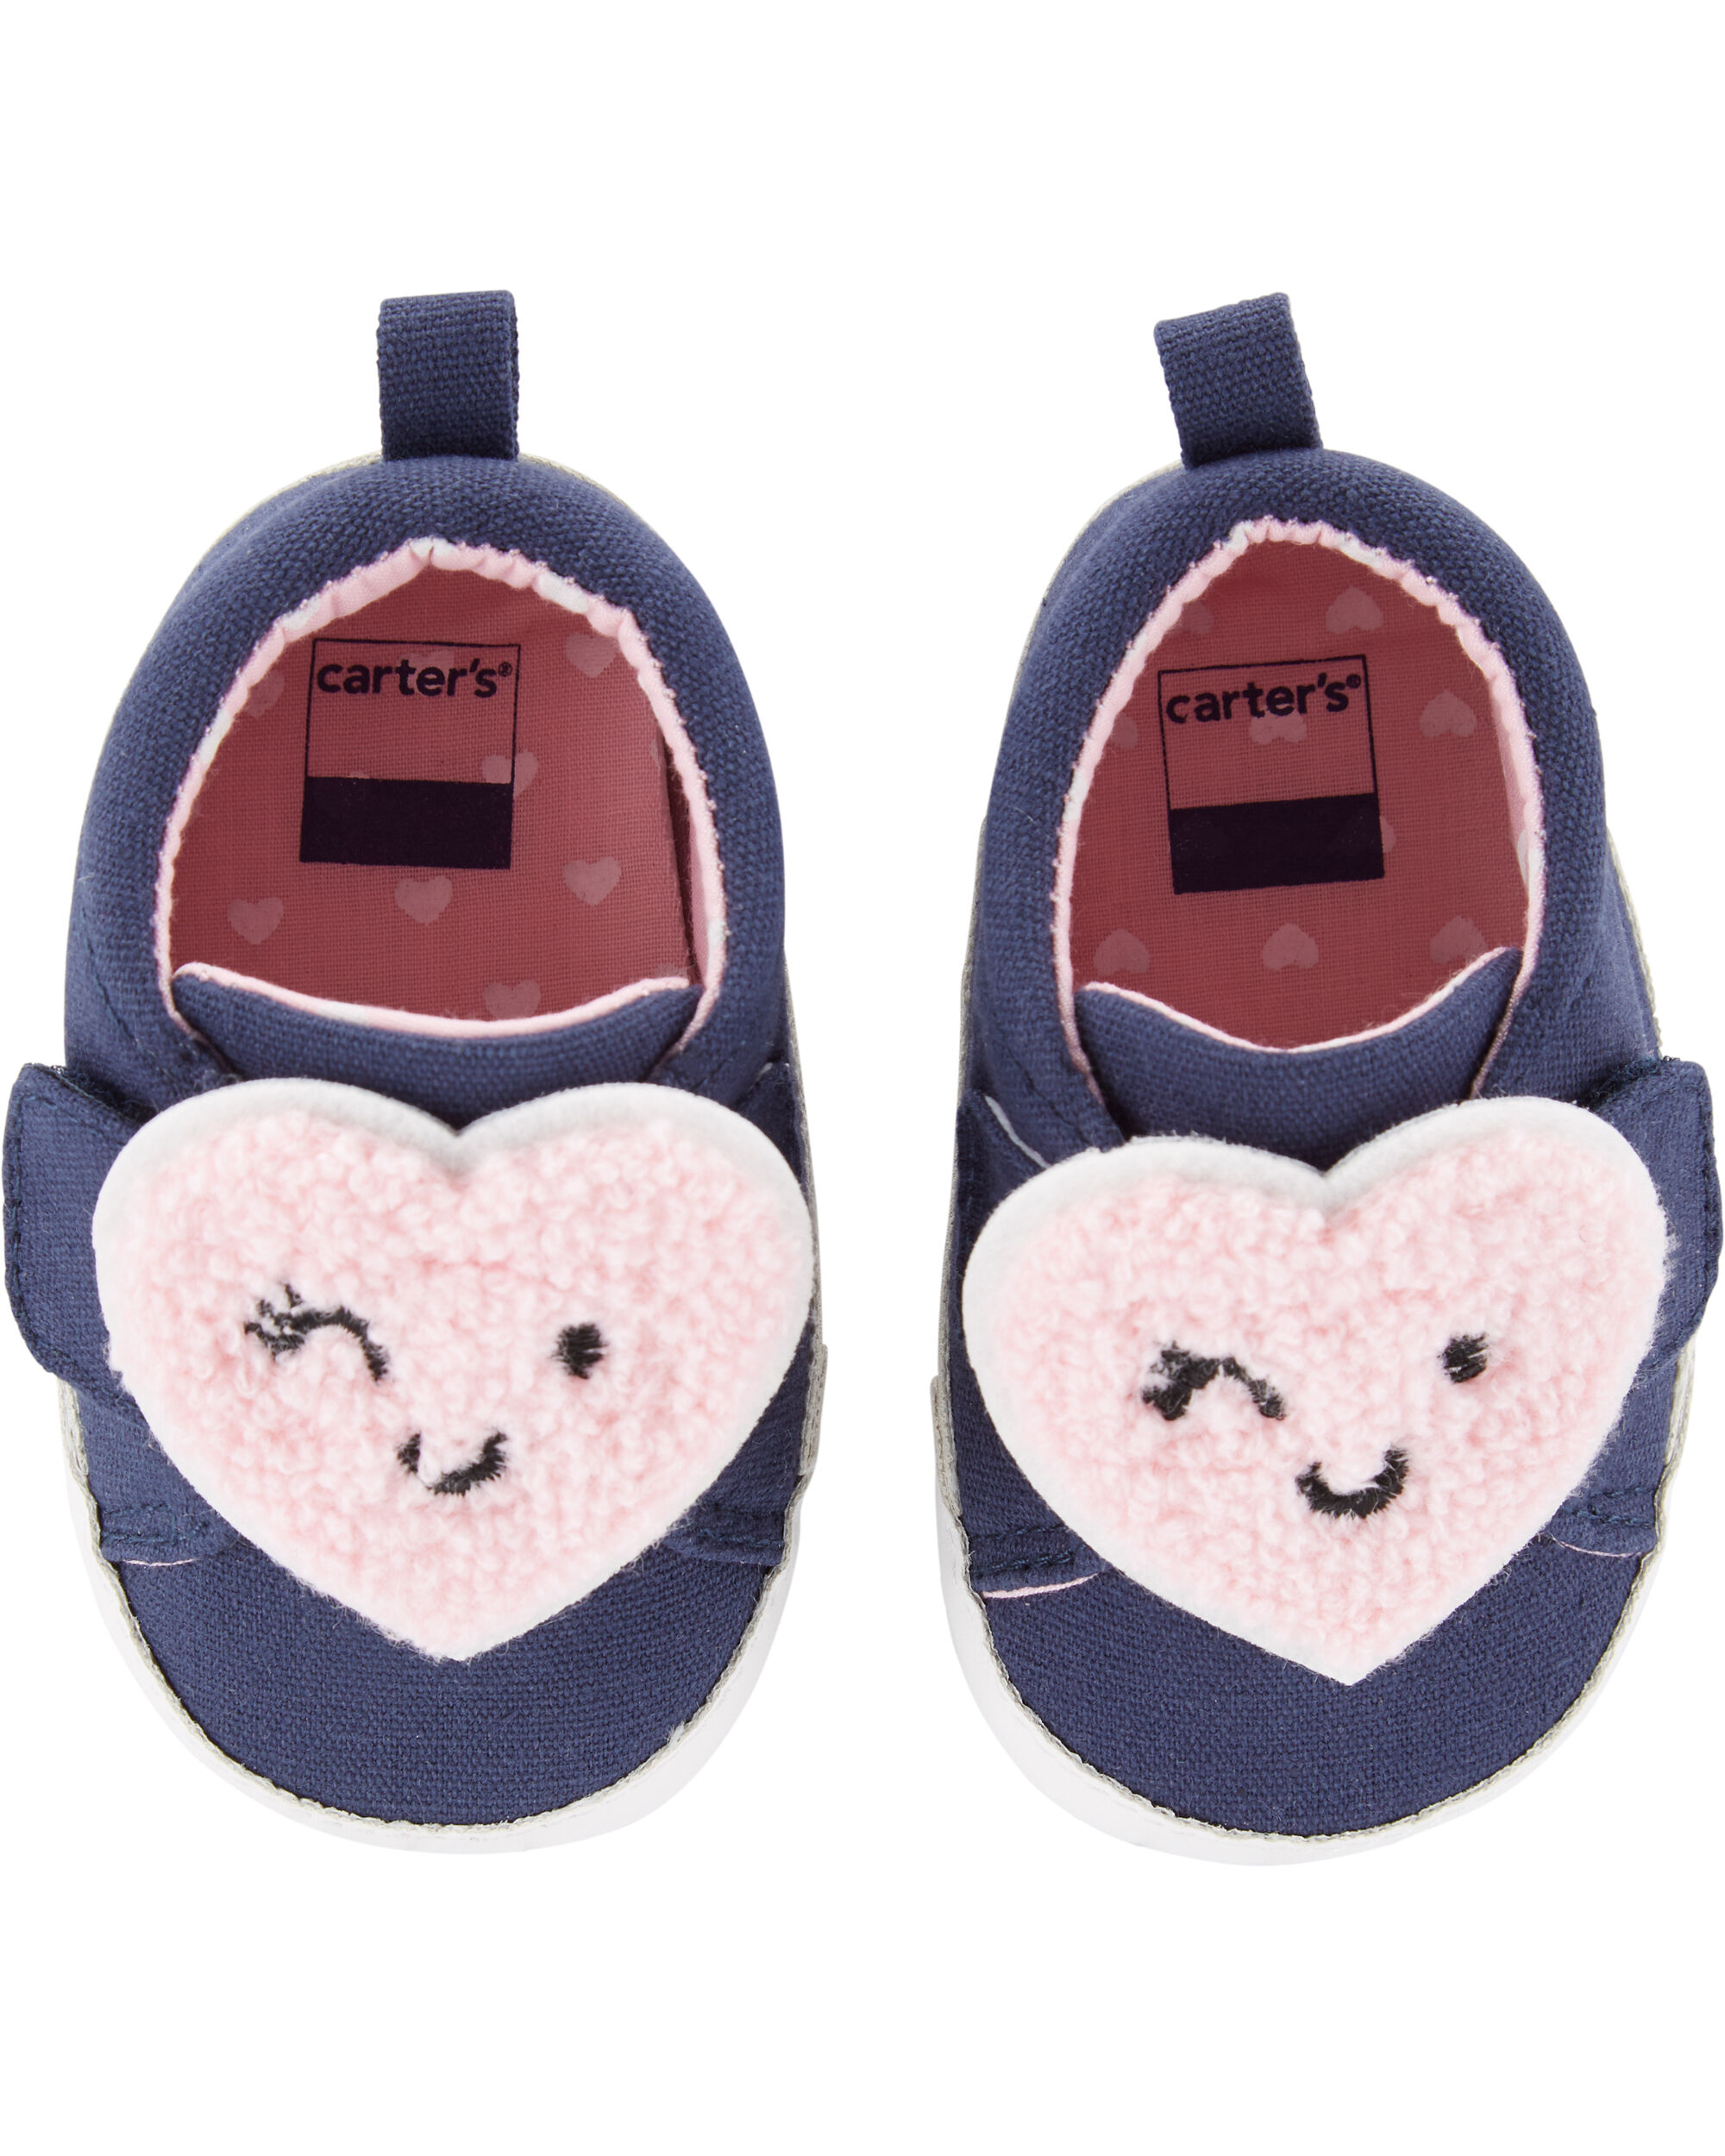 Carter's Heart Baby Shoes | skiphop.com